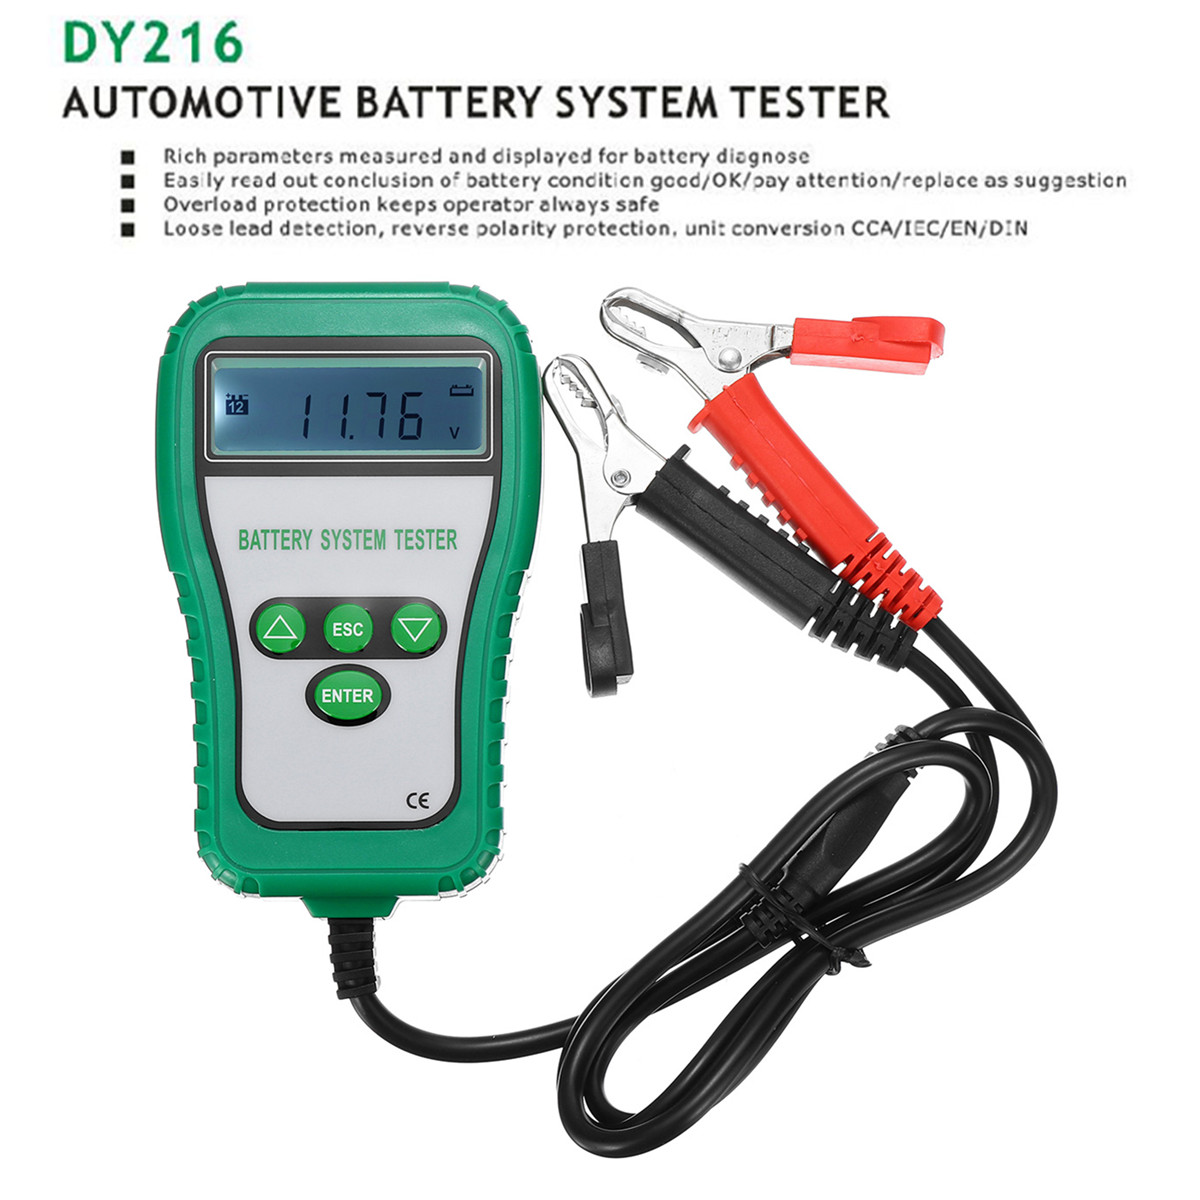 12V LCD Digital Battery Tester Analyzer Tester Cranking Alternator Battery System Amps Battery Resistance Voltage Life Analysis motopower grey 12v smart digital battery tester voltmeter alternator analyzer with lcd and led display for car motorcycle boat